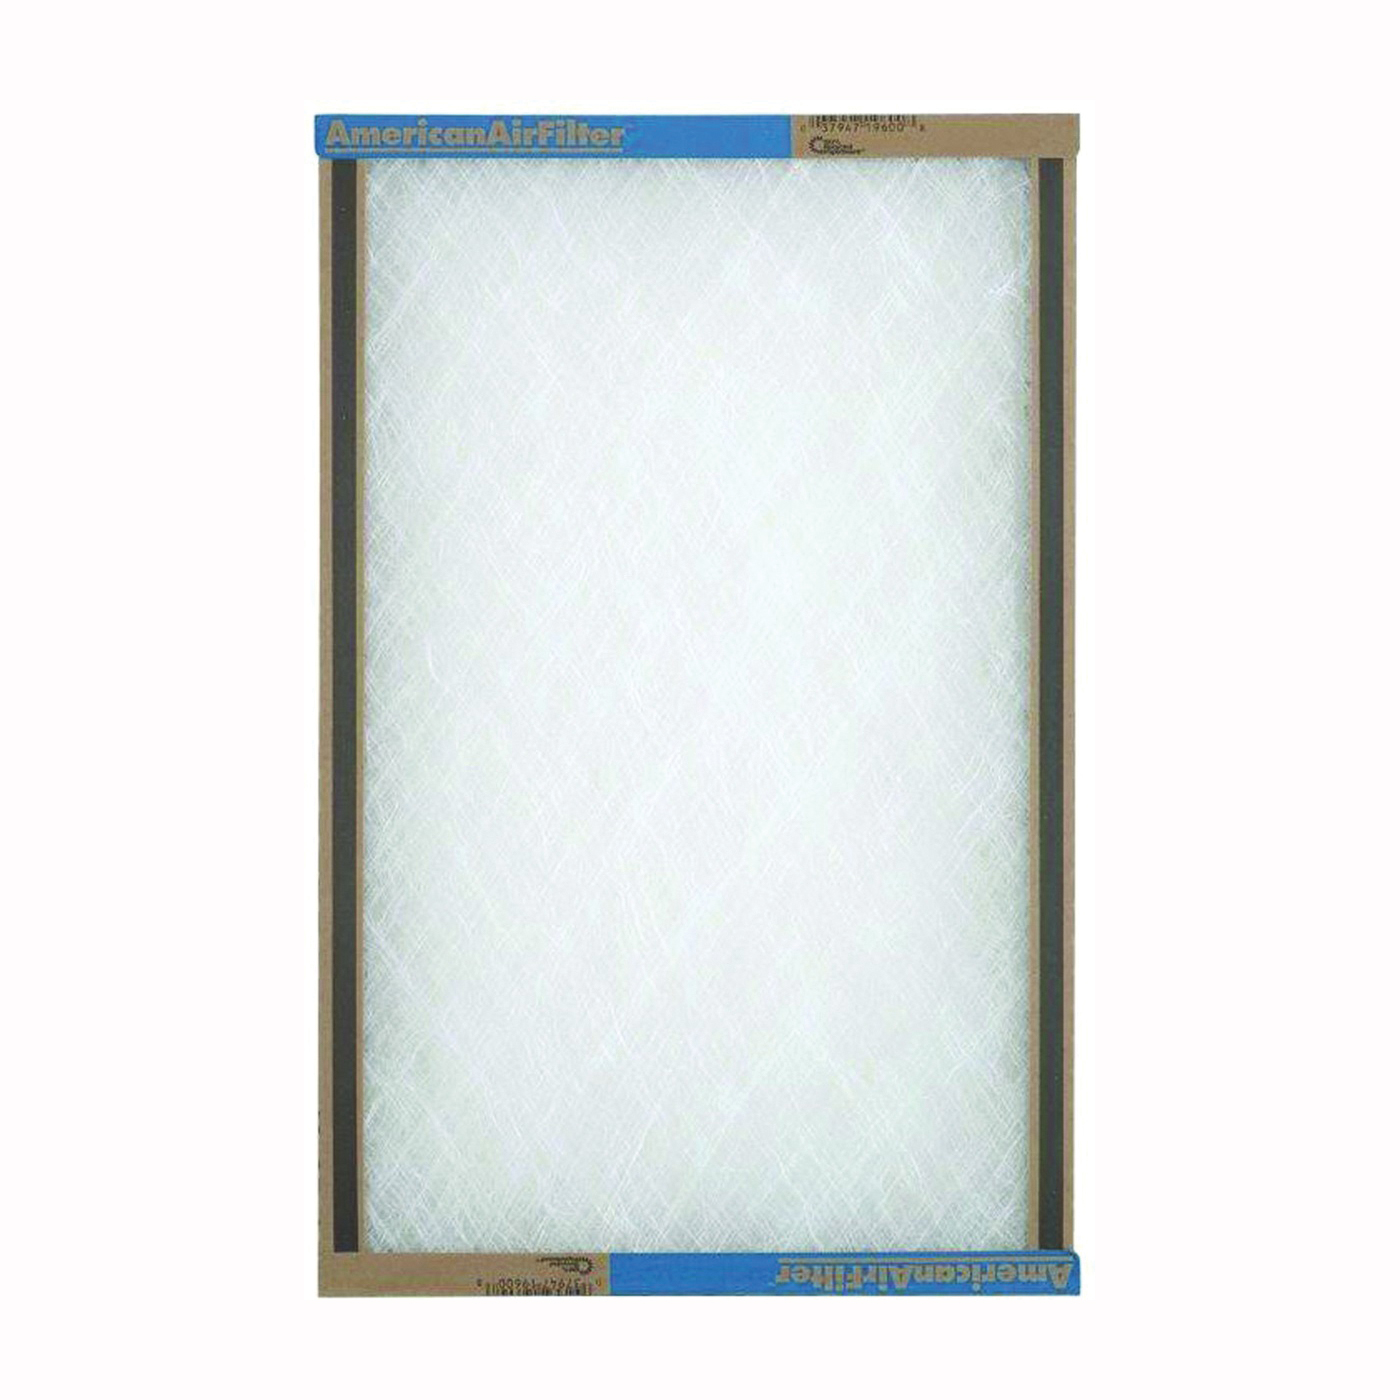 Picture of AAF 114251 Panel Filter, 25 in L, 14 in W, Chipboard Frame